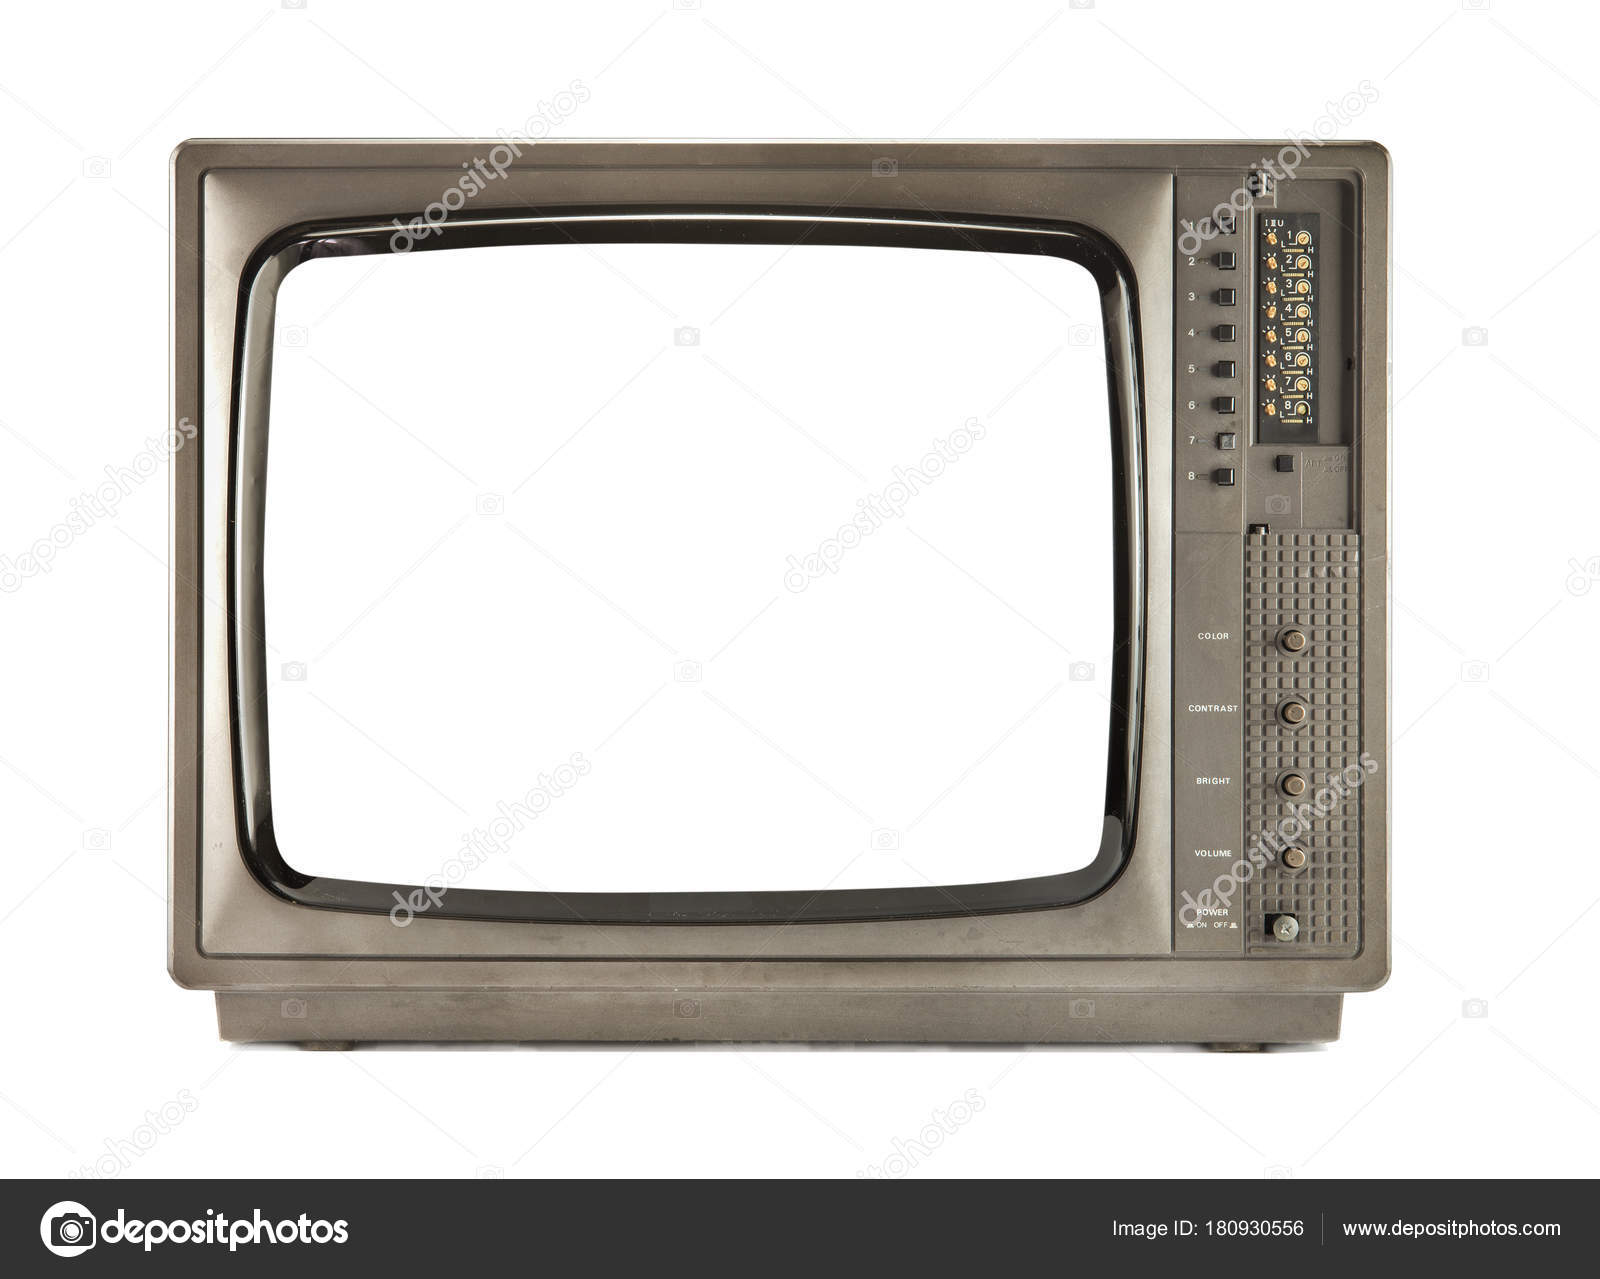 how to make a television set